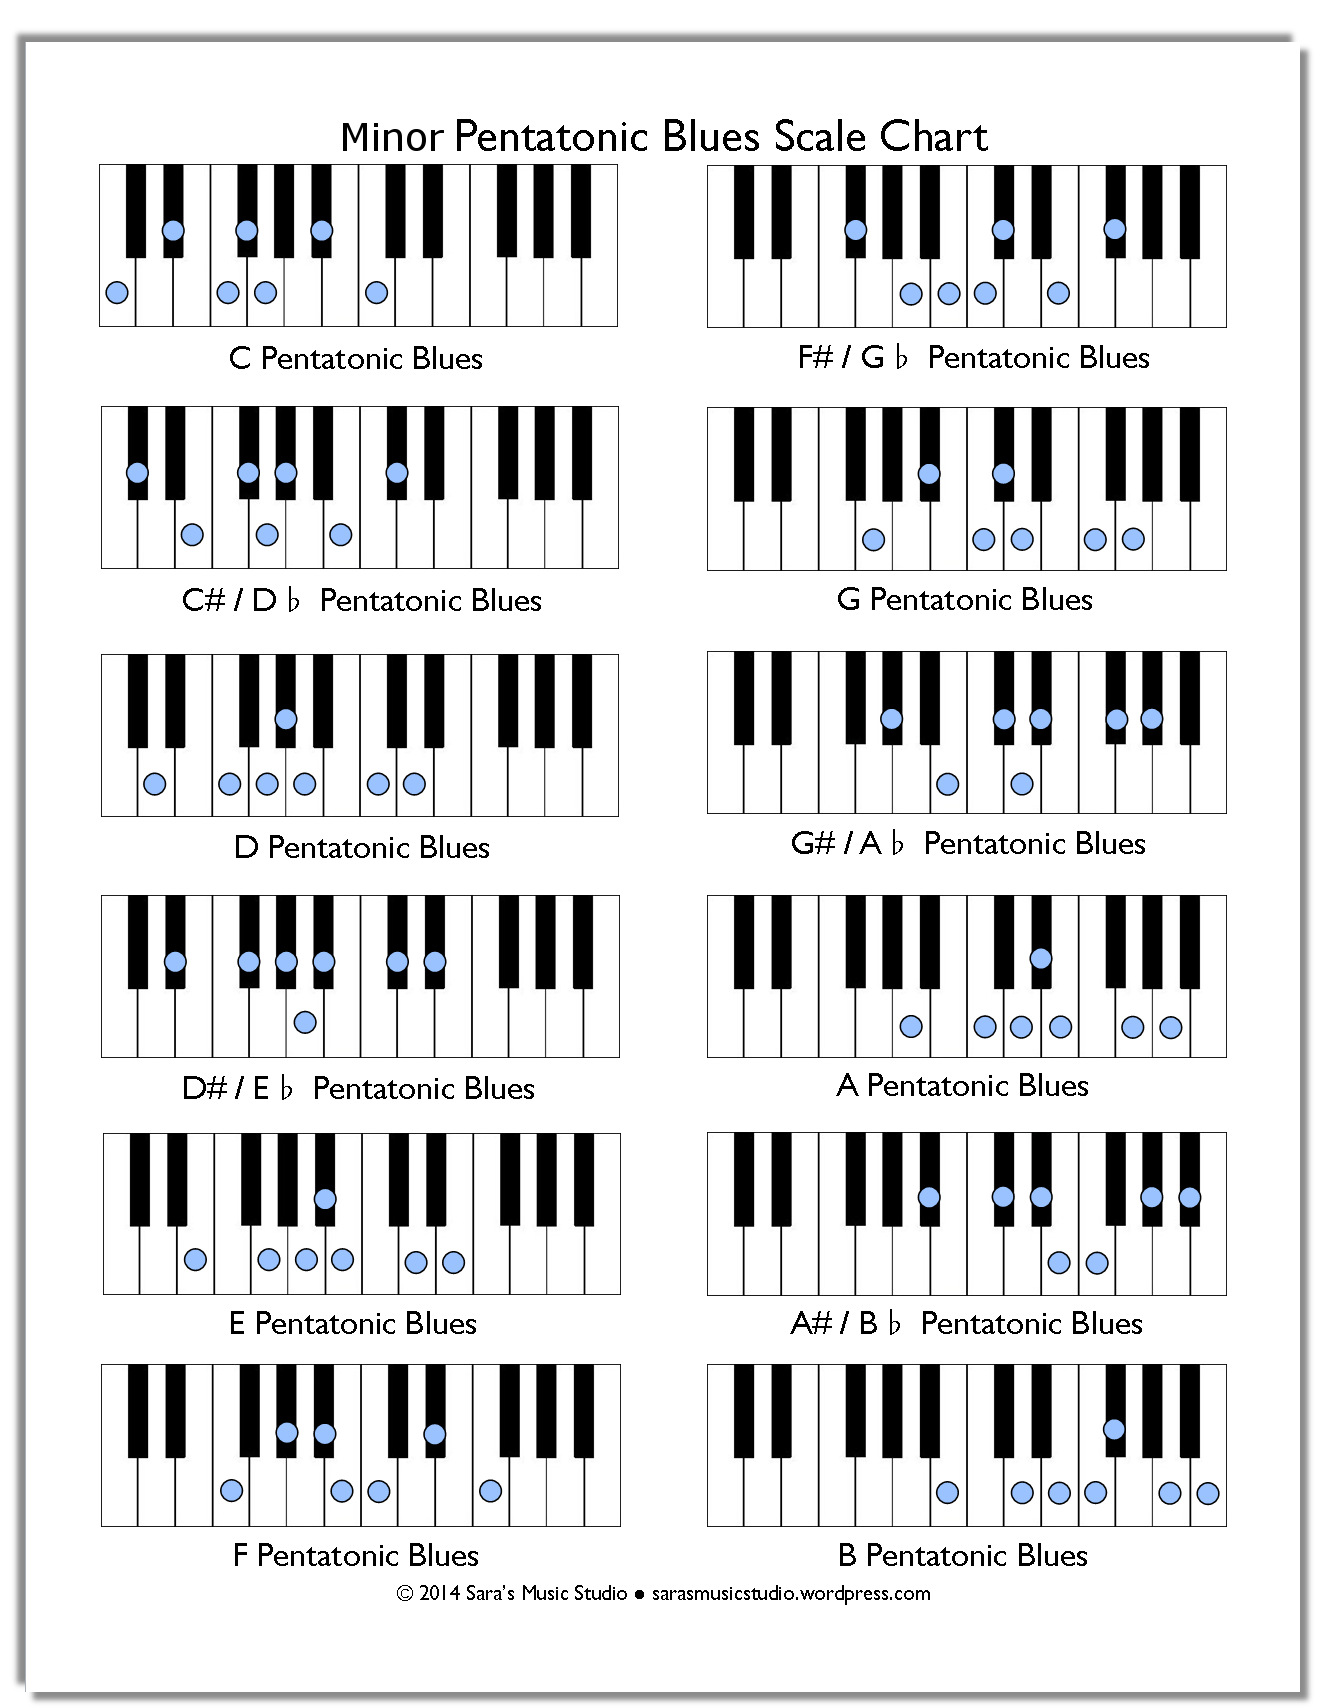 Free Minor Pentatonic Blues Scale Chart Sara S Music Studio